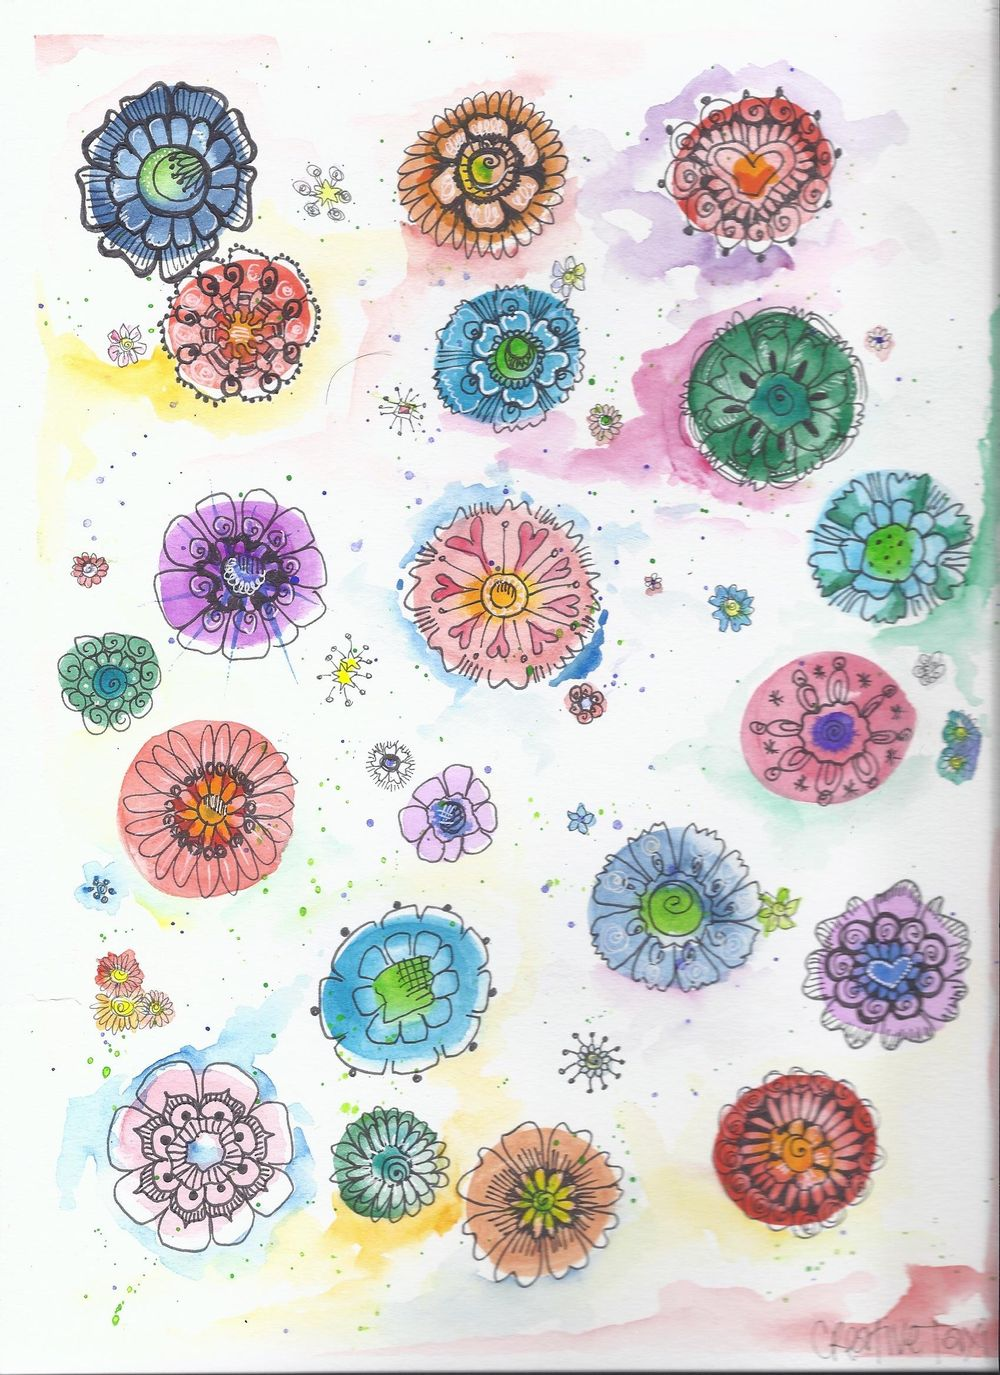 Water color flowers - image 1 - student project